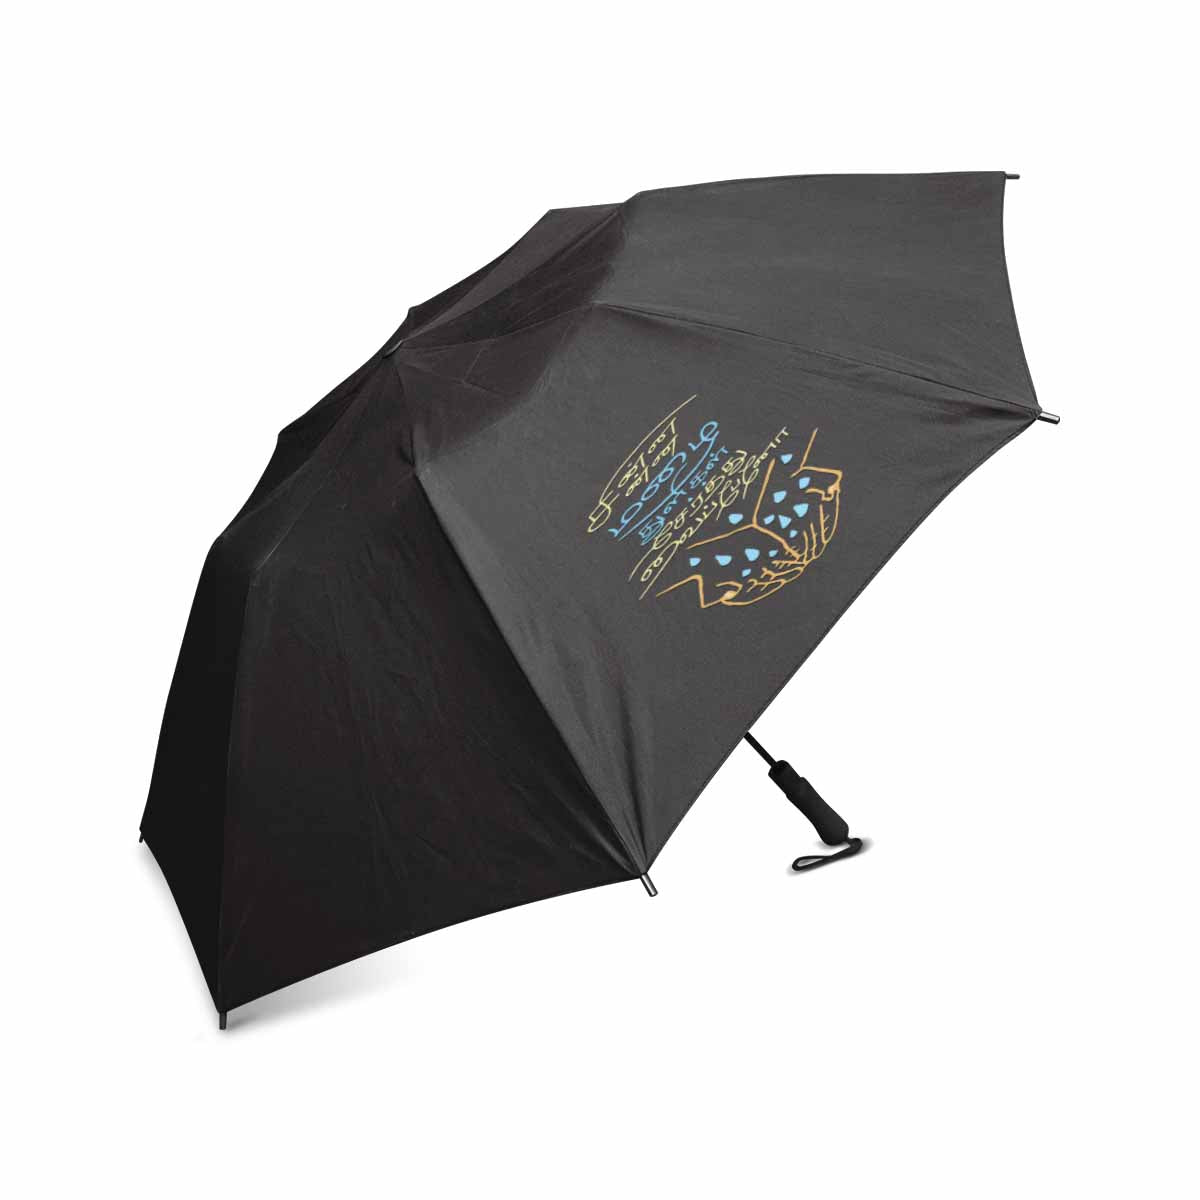 Black Thamizh semi automatic foldable umbrella 42 inch Chinna Chinna Mazhaithuligal Serthuvaipaeno gift idea for friends and family